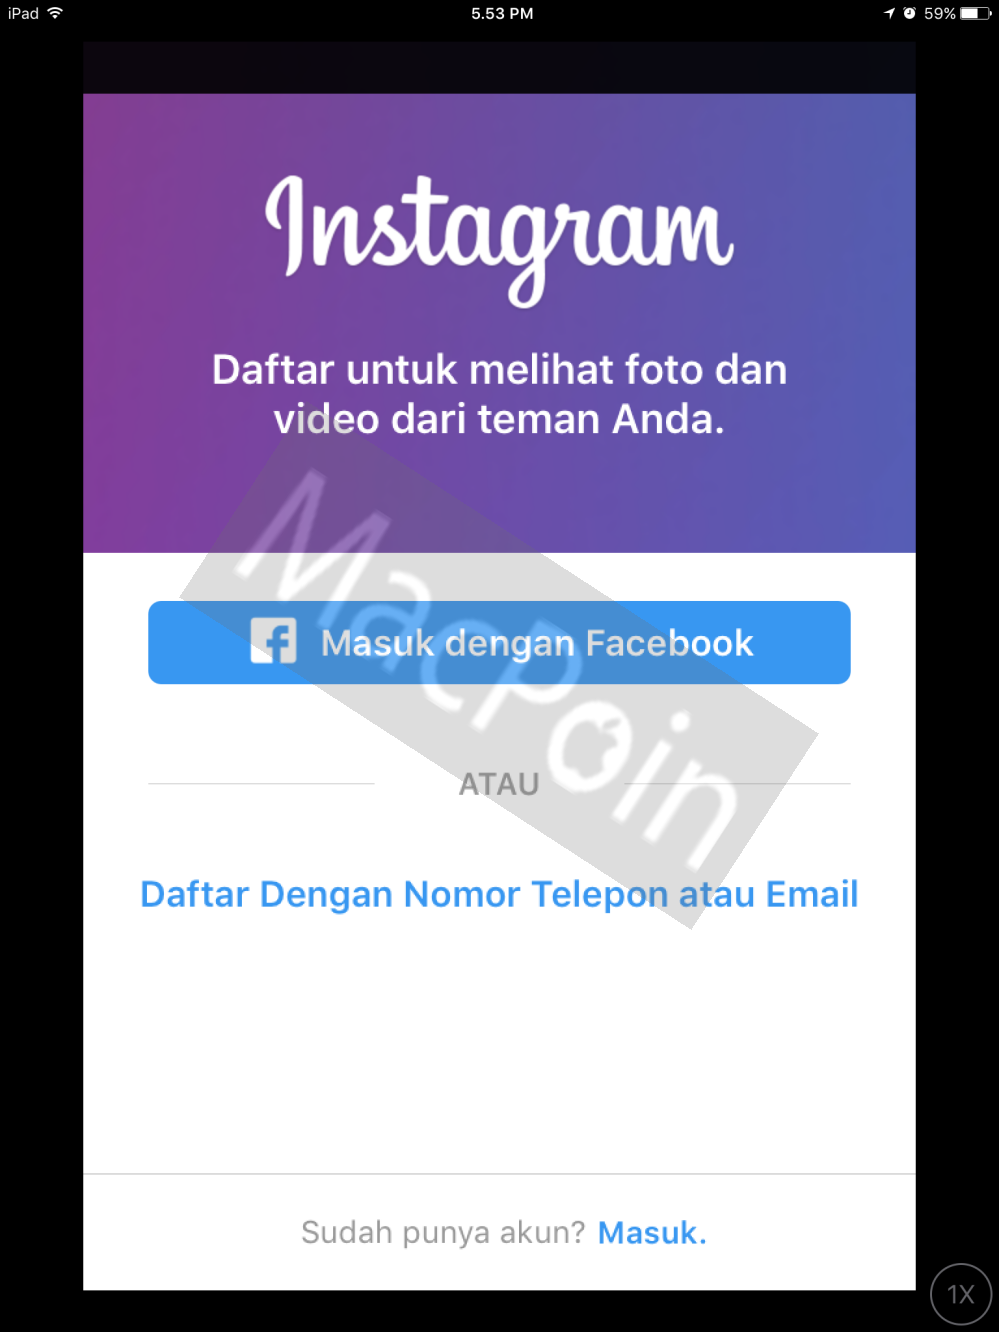 Tutorial Cara Download dan Install Instagram ke iPad